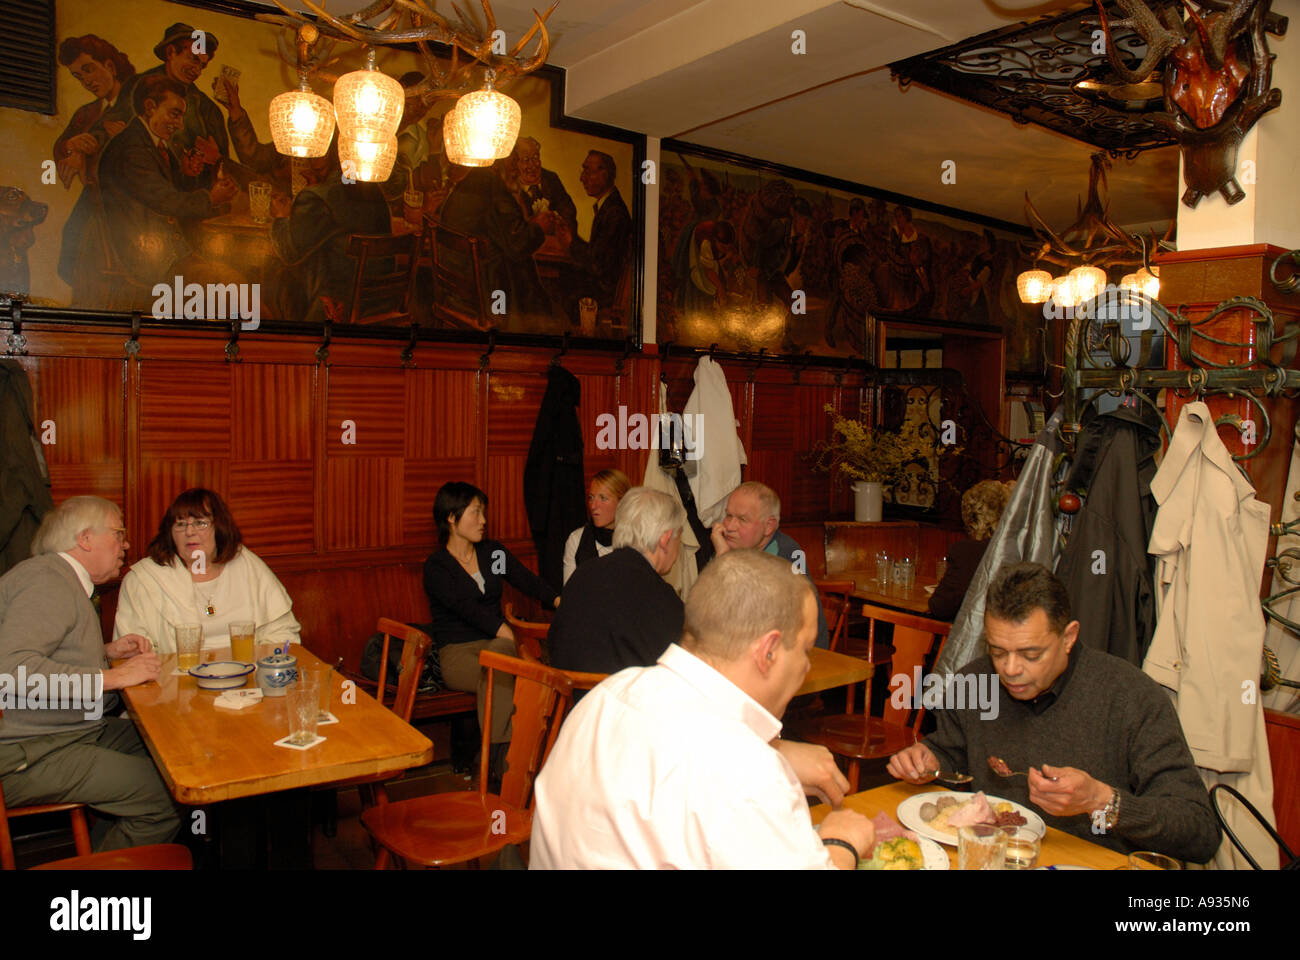 People eating in traditional Frankfurt apple wine restaurant - Stock Image